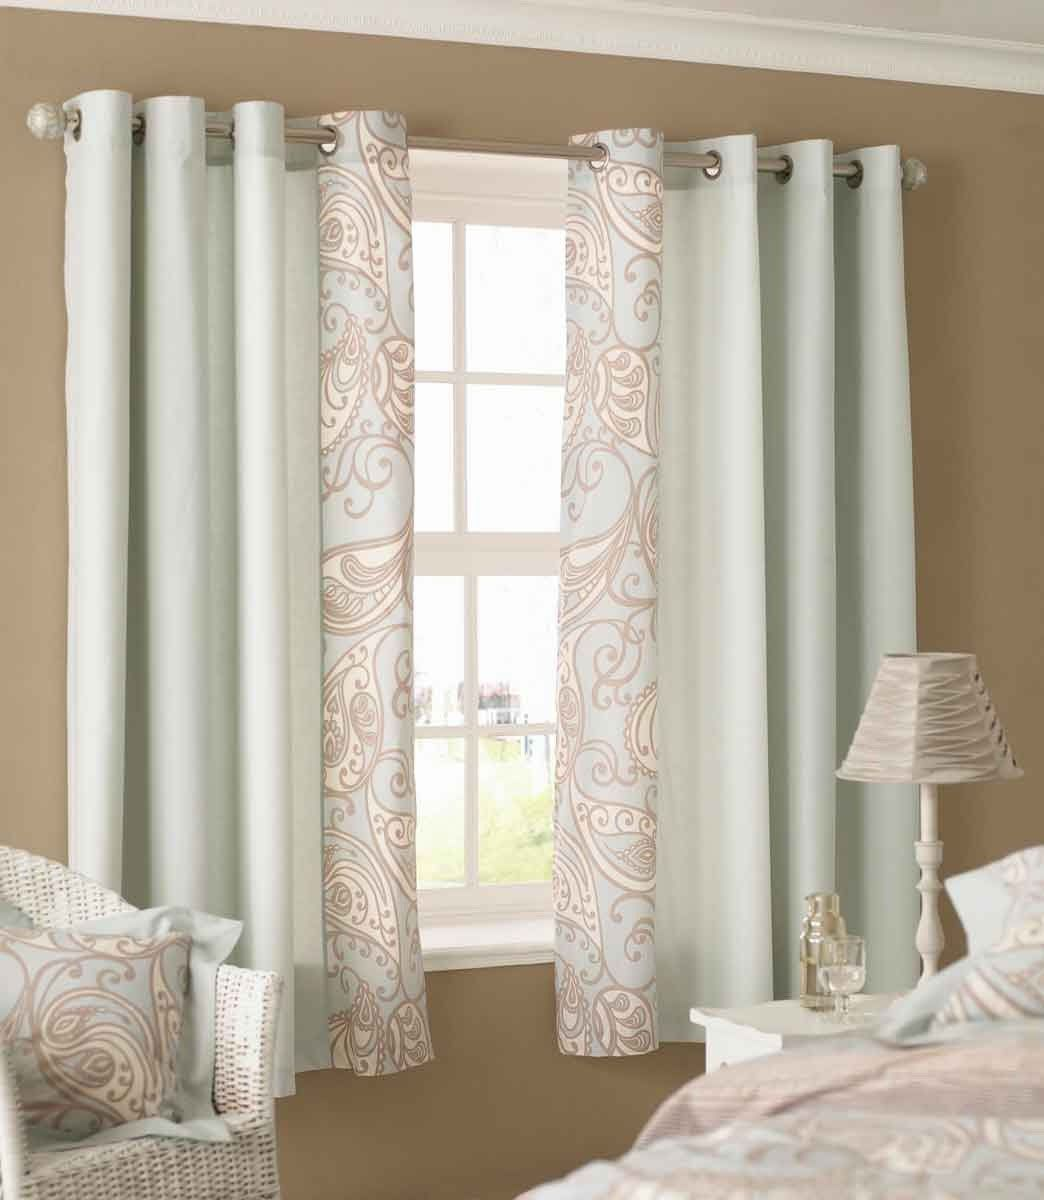 Small window ideas  simple living room curtain designs  clubmaraton